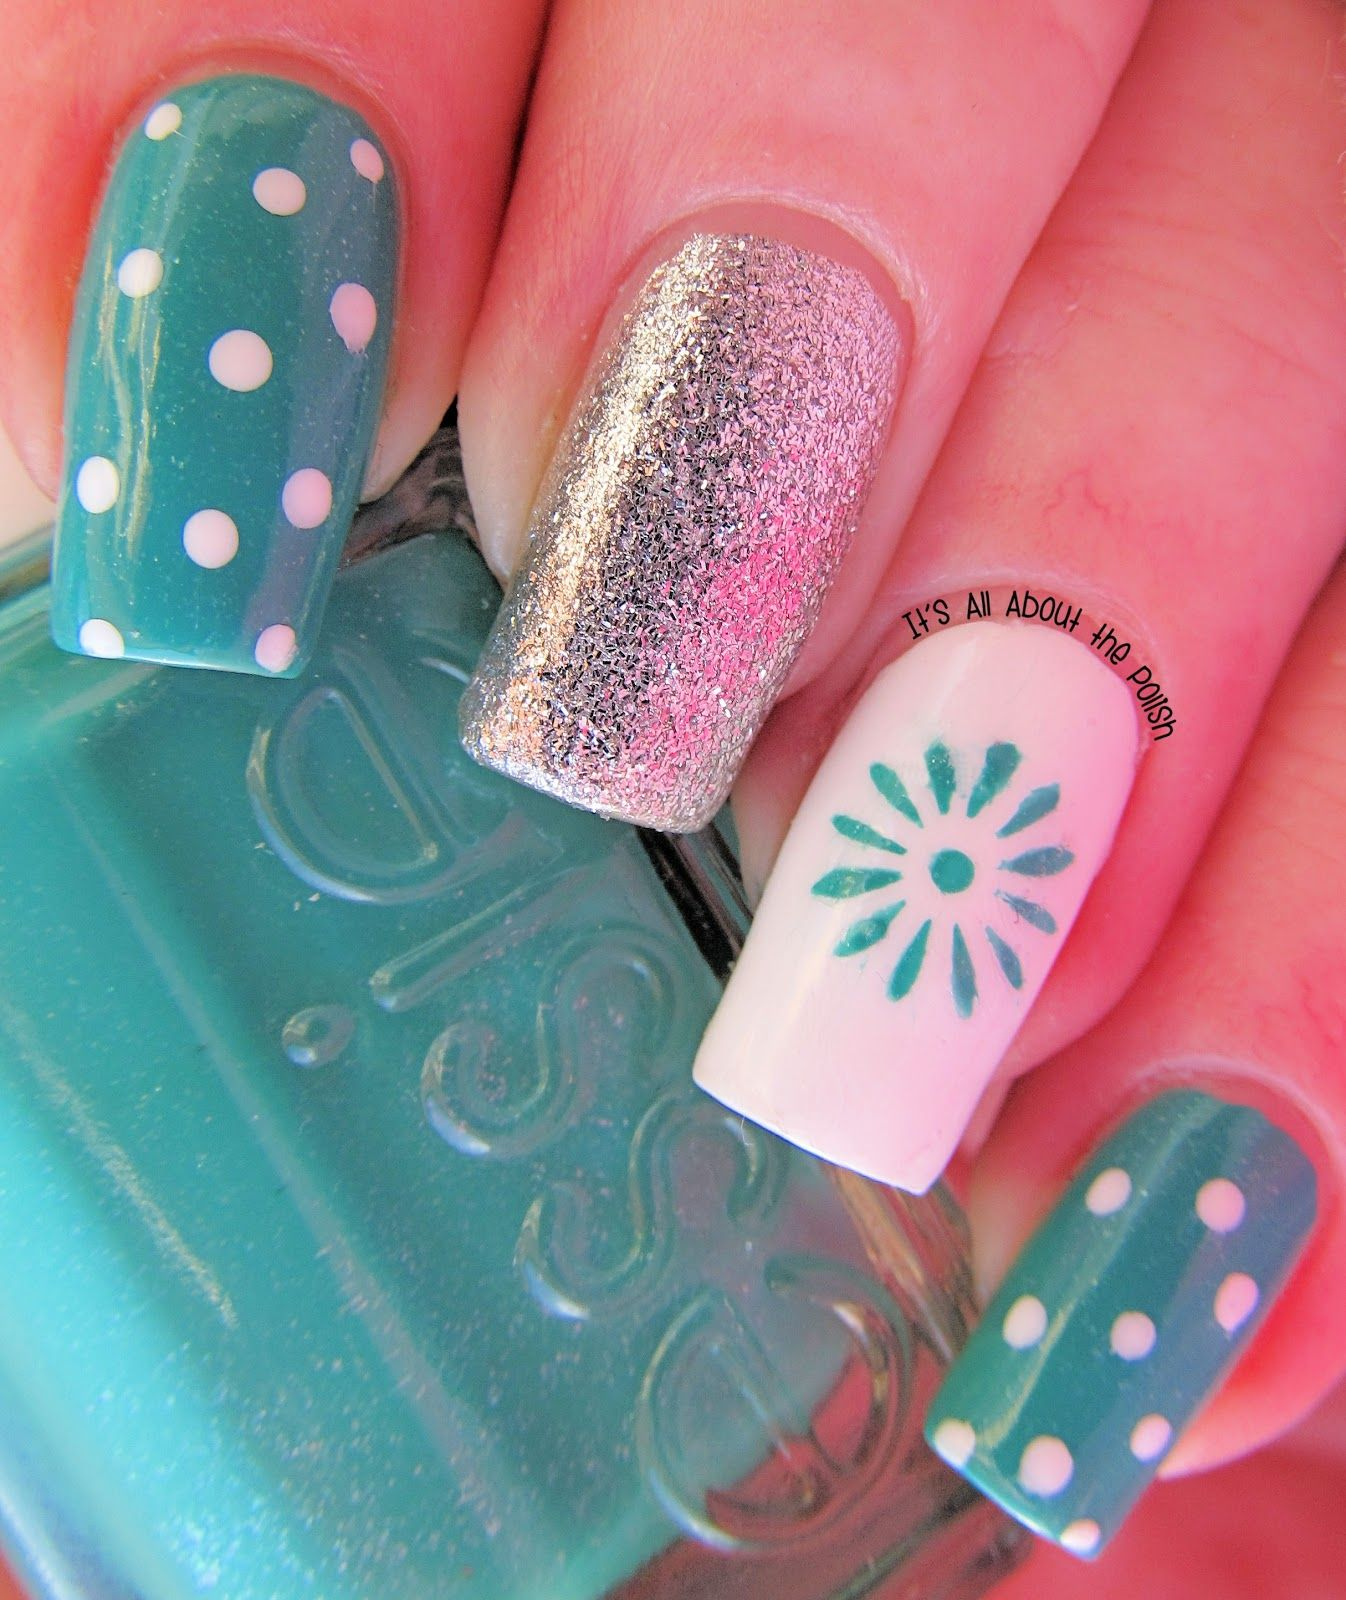 Itus all about the polish essie naughty nautical daisy and dot